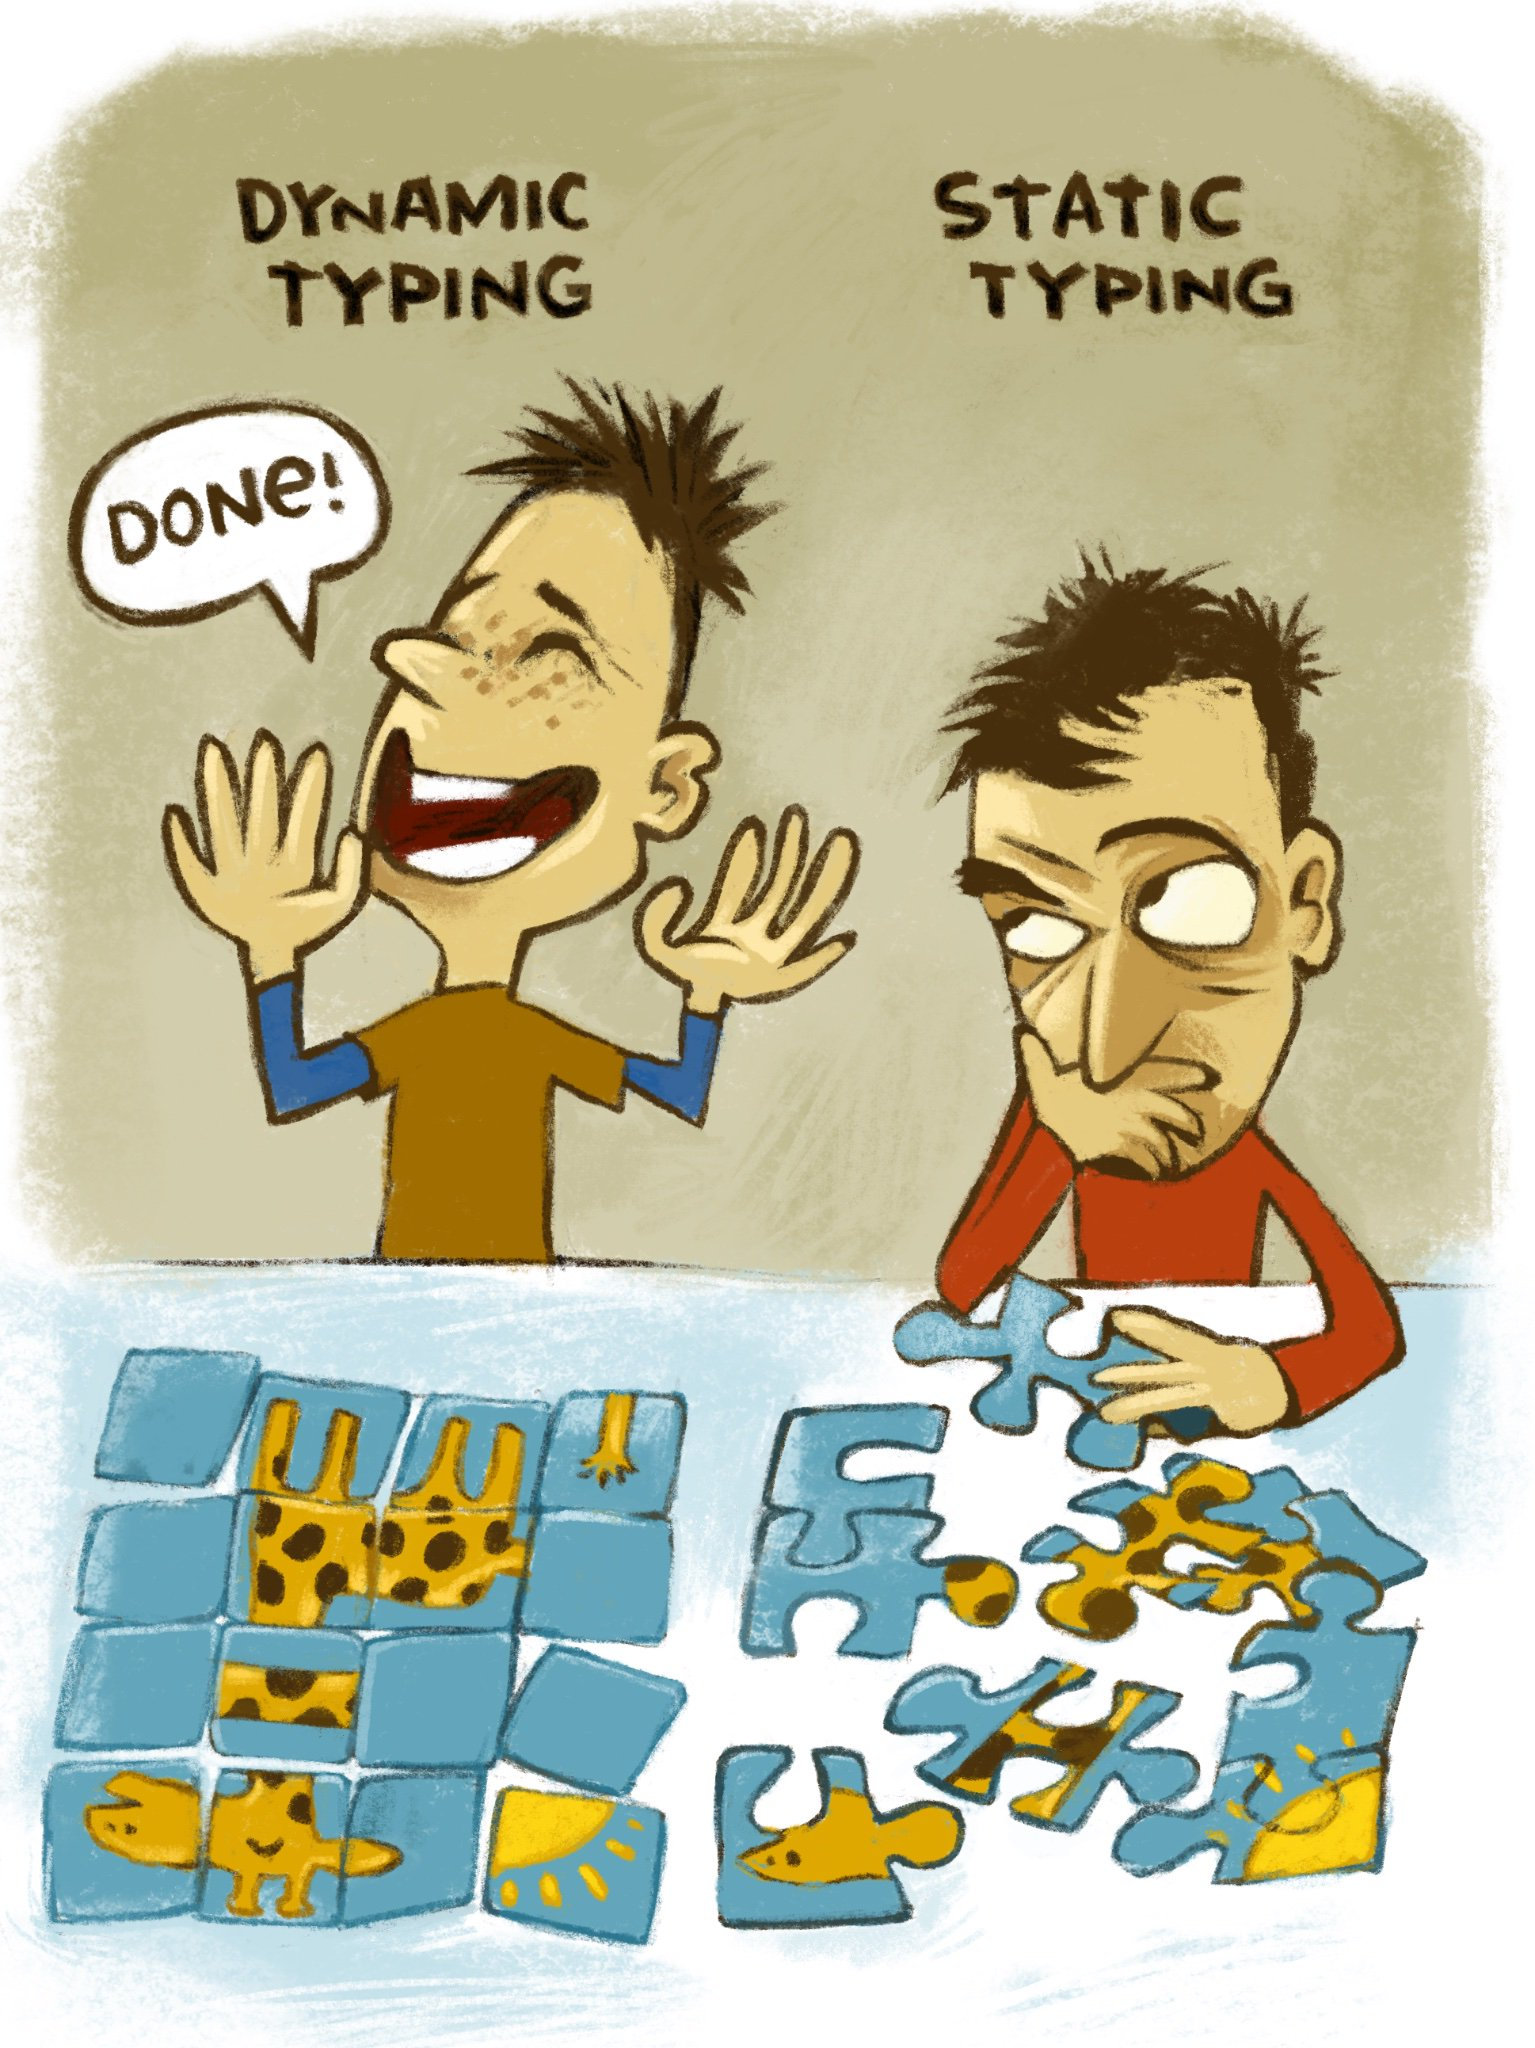 Two people are working on two jigsaw puzzles, each depicting a giraffe. One, labeled 'Static typing', has traditional puzzle-pieces that only fit one way. Its solver is slowly making progress. The other, labeled 'Dynamic typing' has identically shaped square pieces. Its solver has arranged them into a giraffe, with several obvious errors (e.g. its neck is in-place but sideways). He shouts, 'Done!'